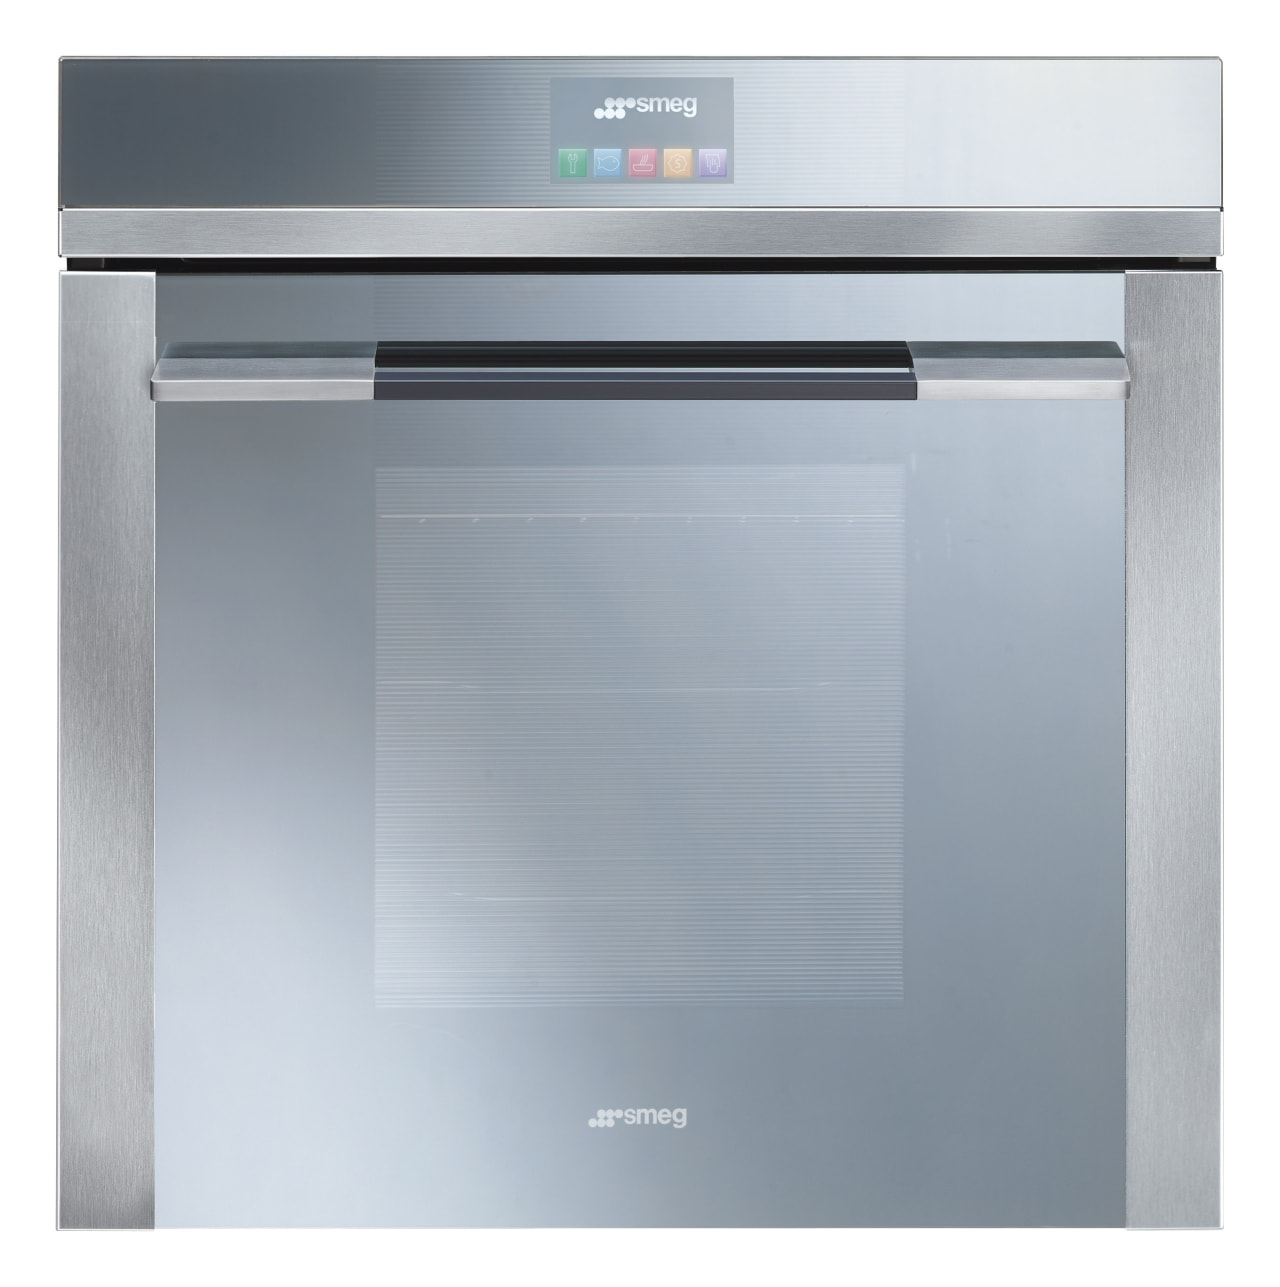 Top-of-the-range Smeg SPFA 140, which is operated purely home appliance, kitchen appliance, oven, product, product design, gray